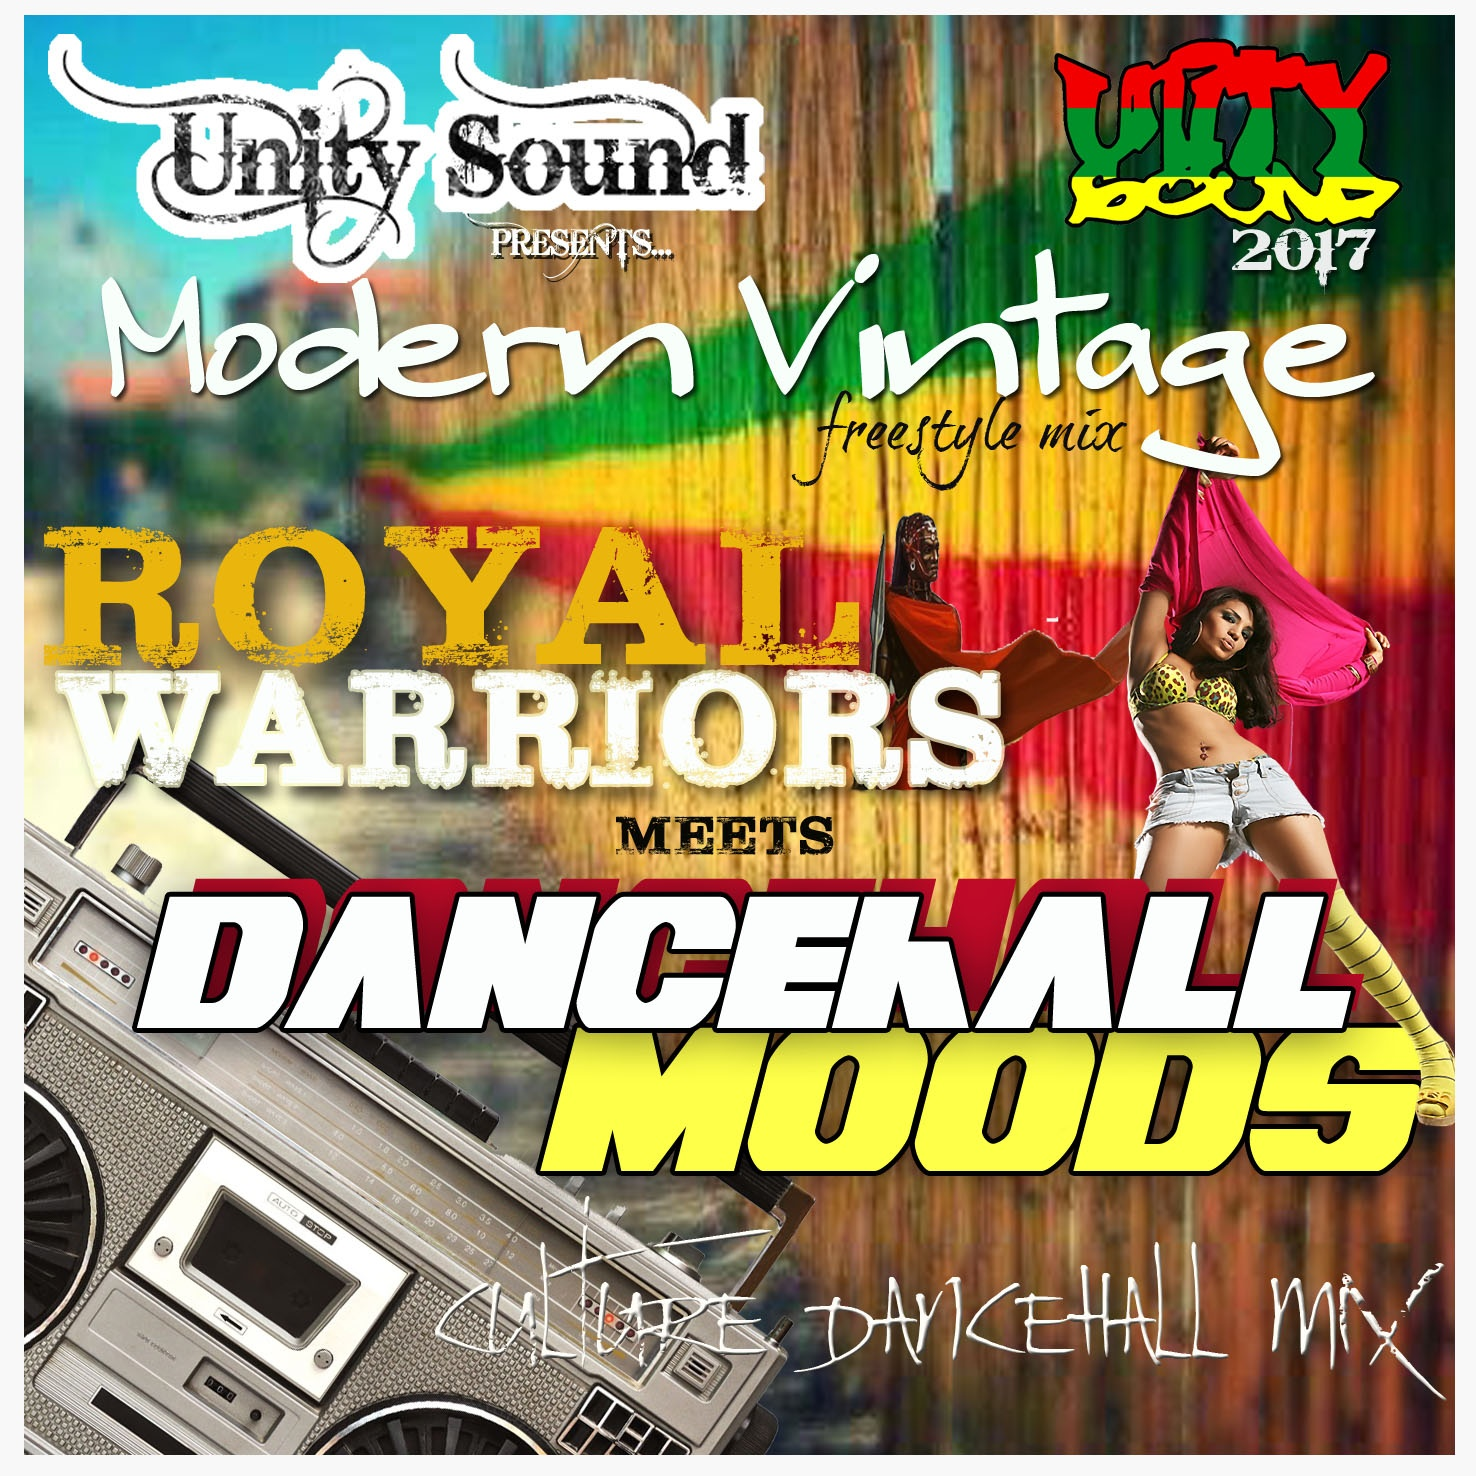 [Single-Tracked Download] Unity Sound - Royal Warriors meets Dancehall Moods - 2017